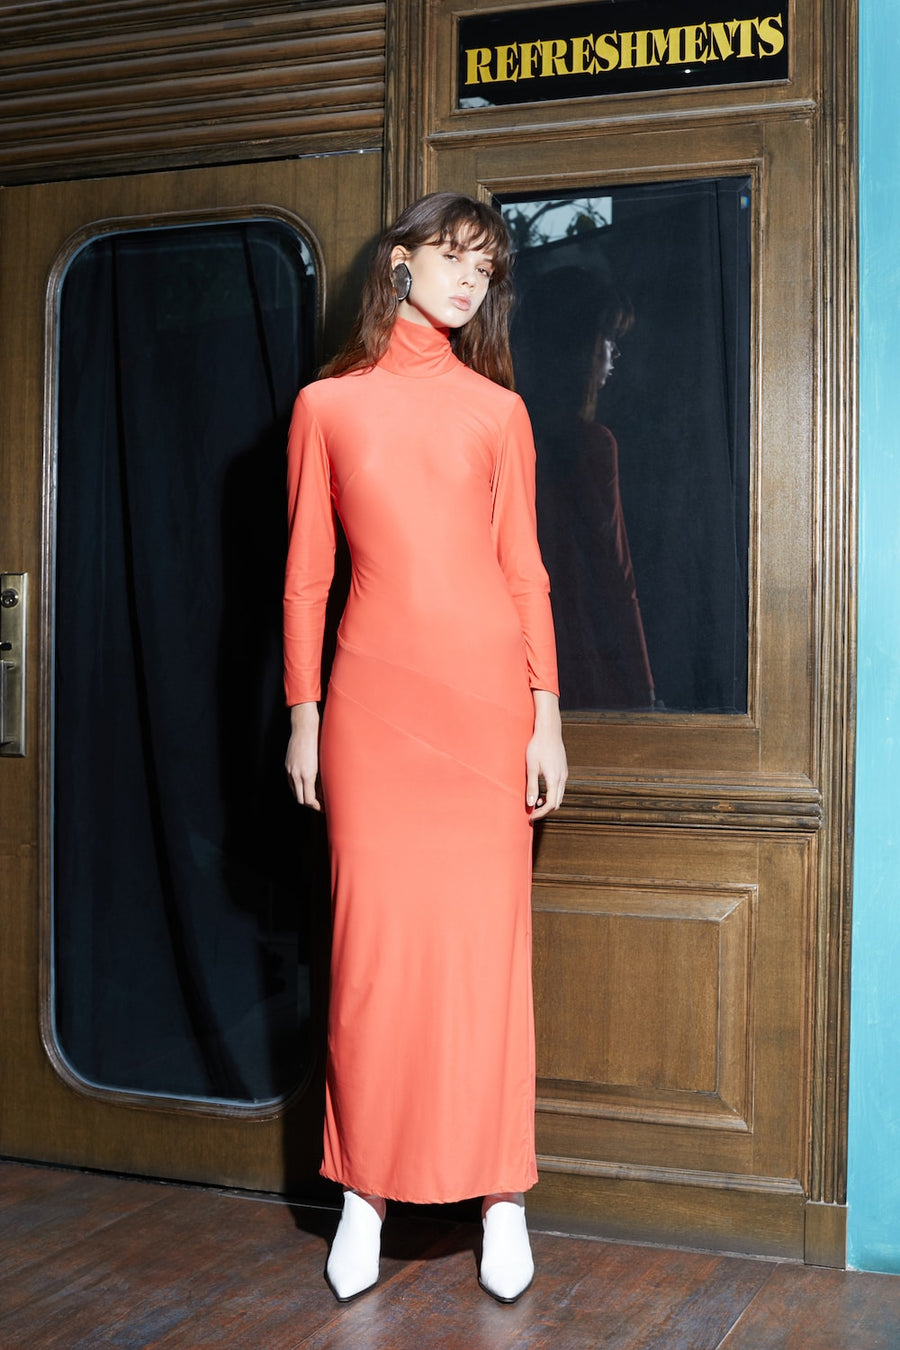 Marmalade Turtleneck Dress